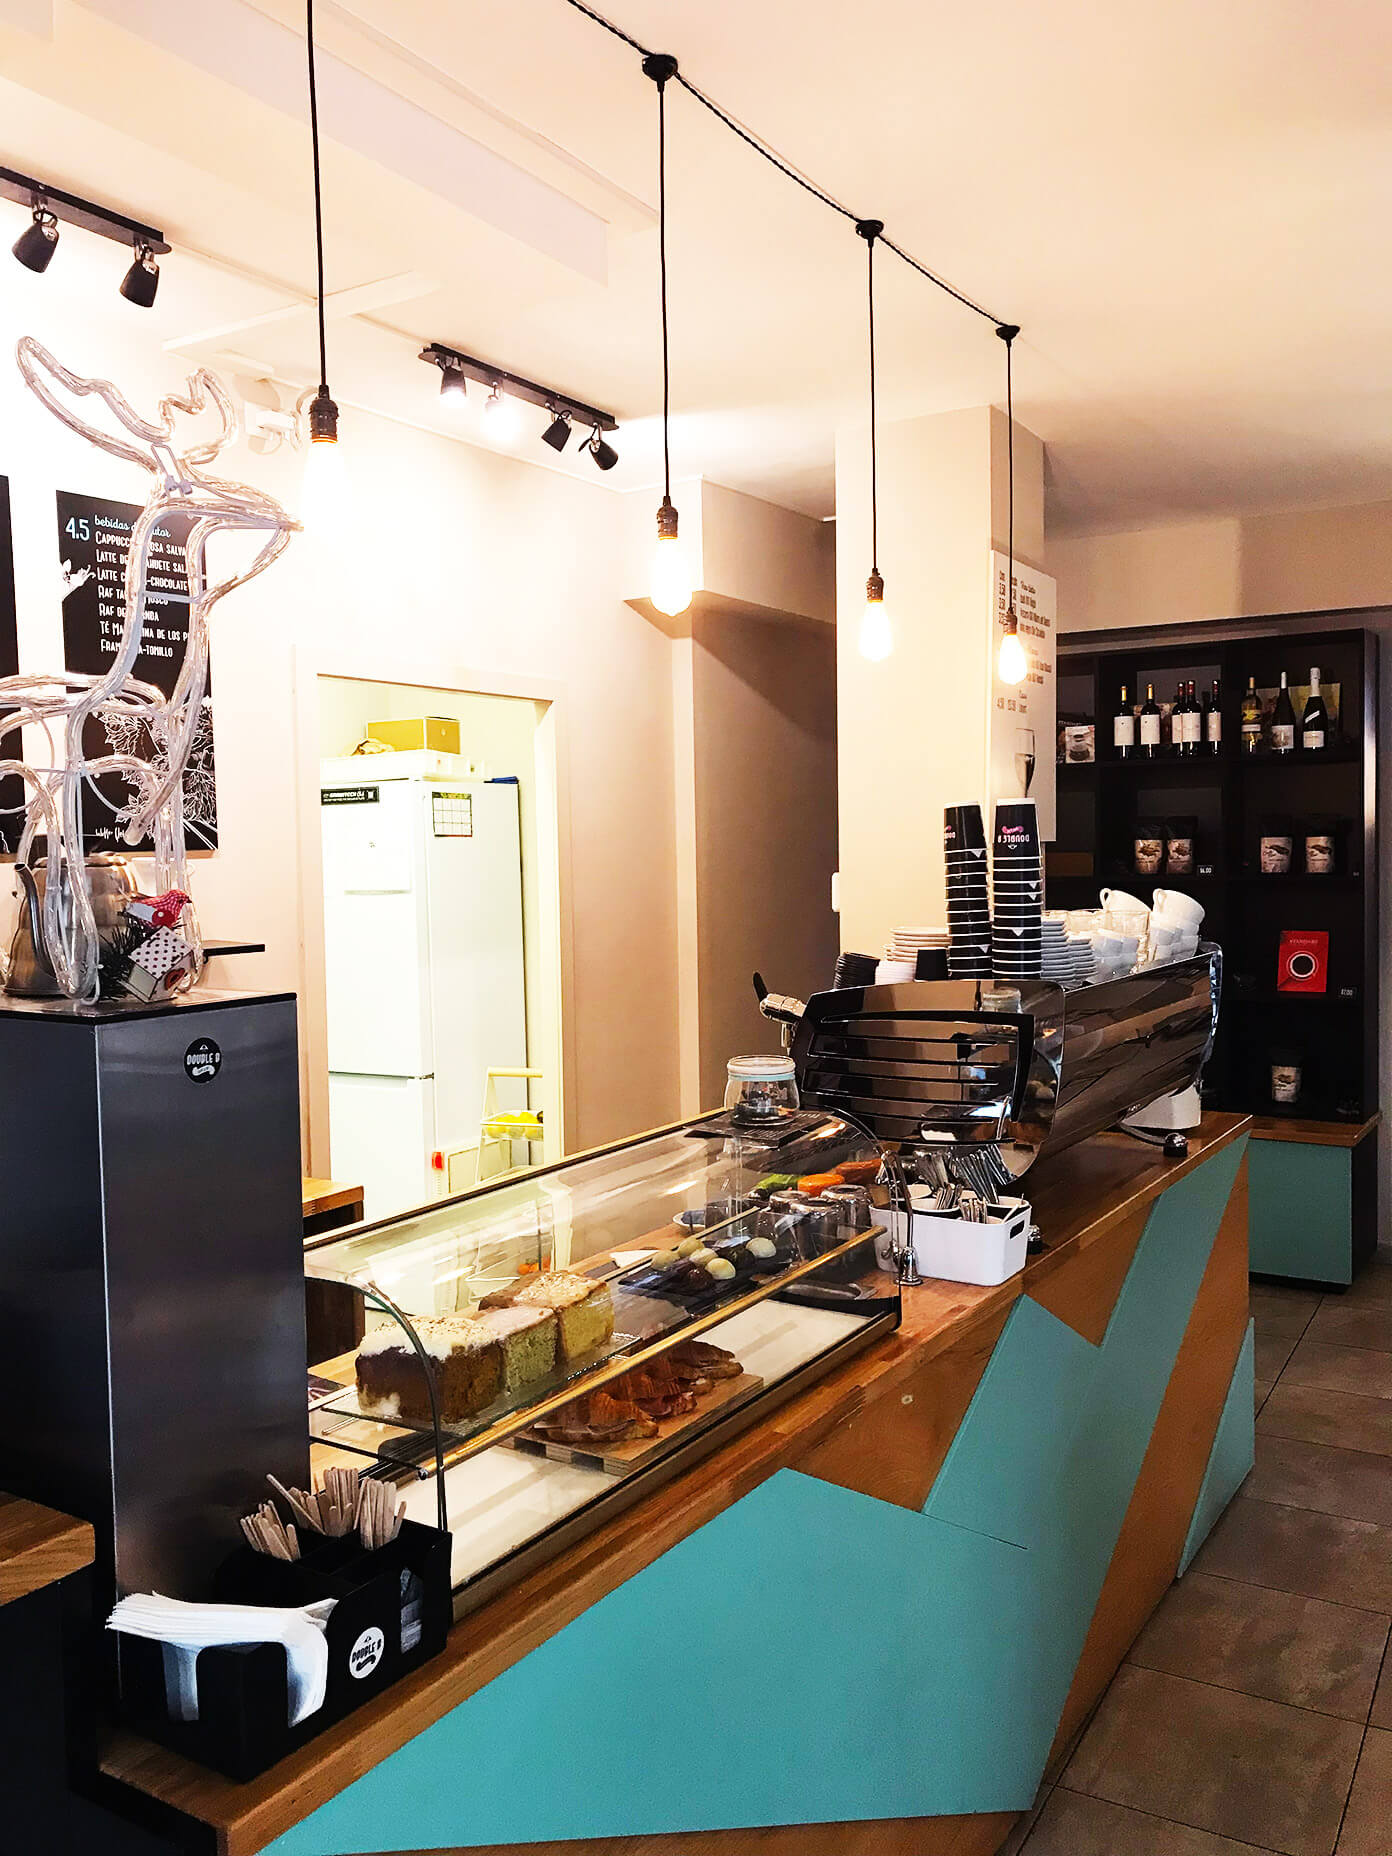 Double B - pour over coffee and espresso in Born | Gimme Some Barcelona Travel Guide